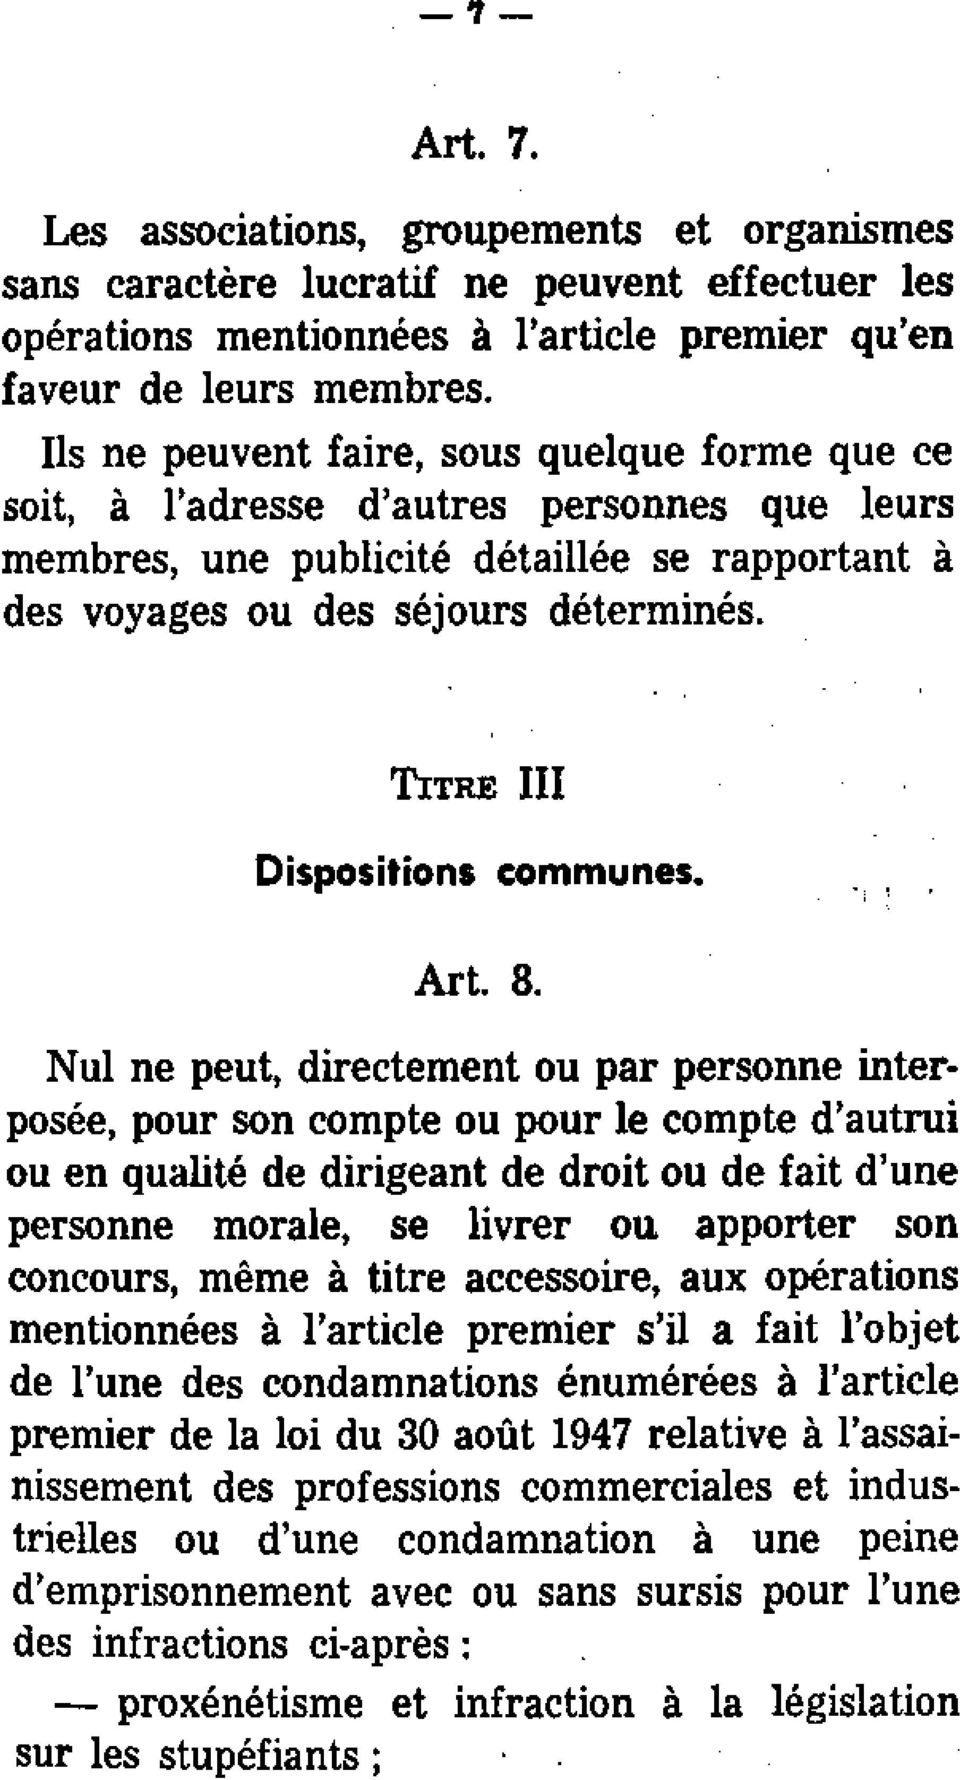 TITRE III Dispositions communes. Art. 8.